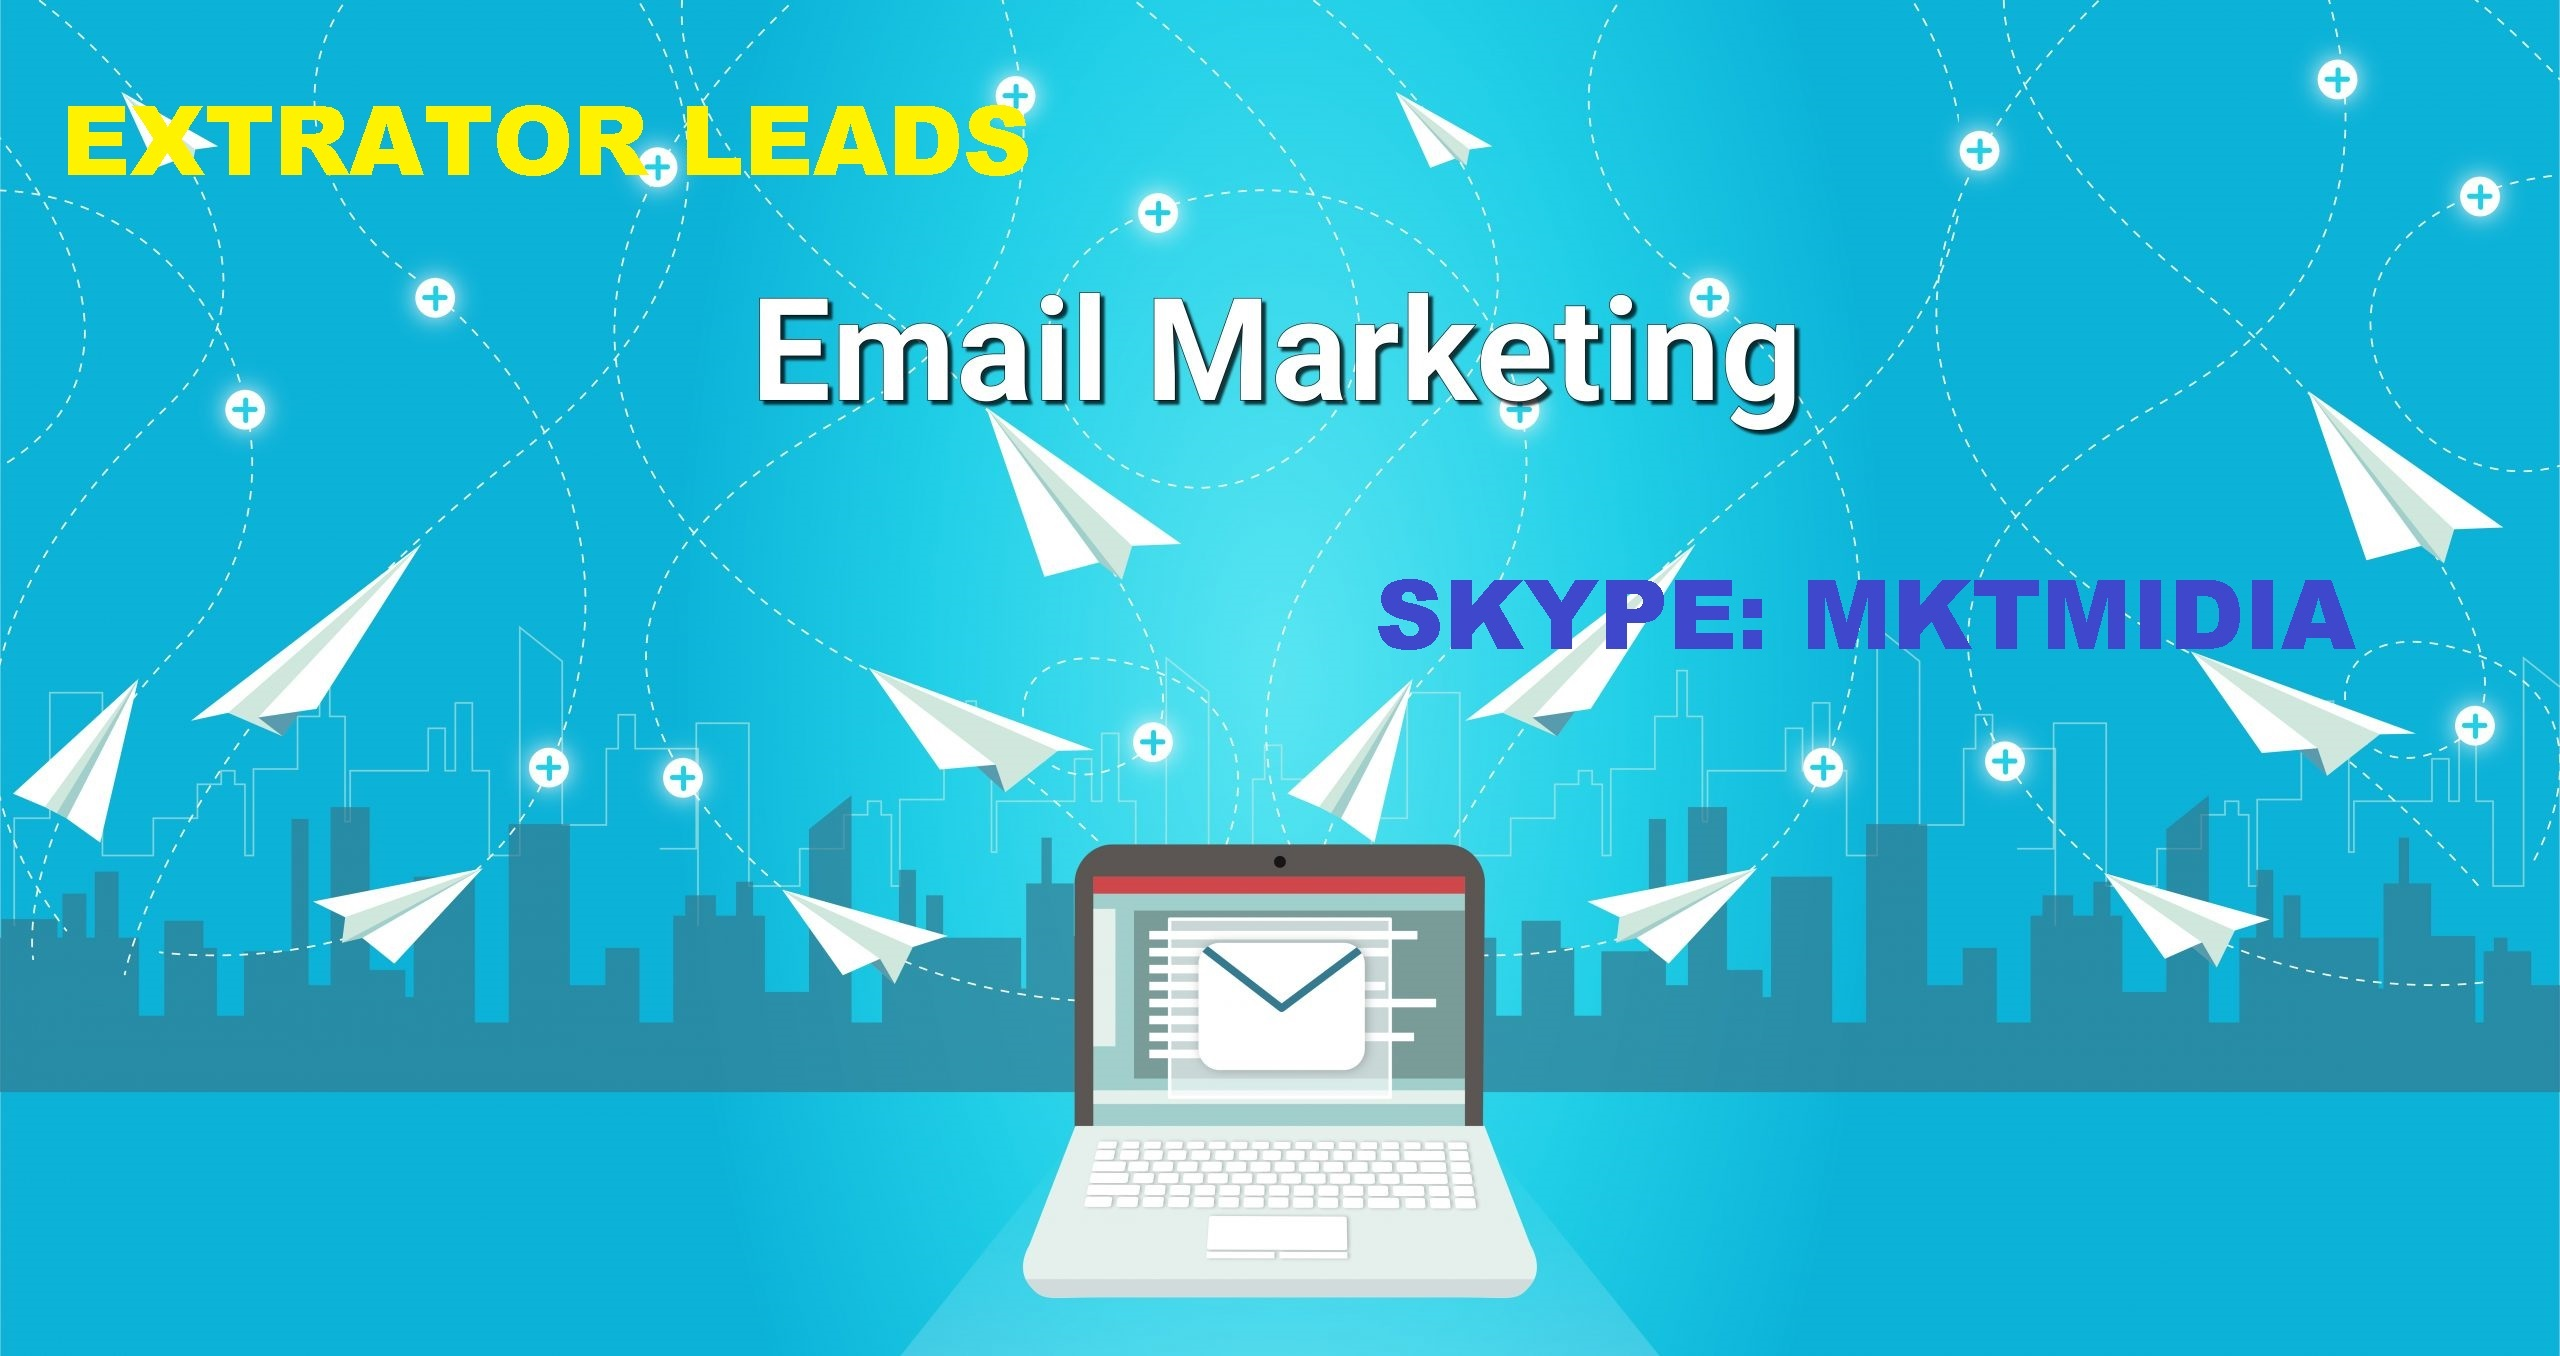 Software Extrator Leads Email Marketing 2022